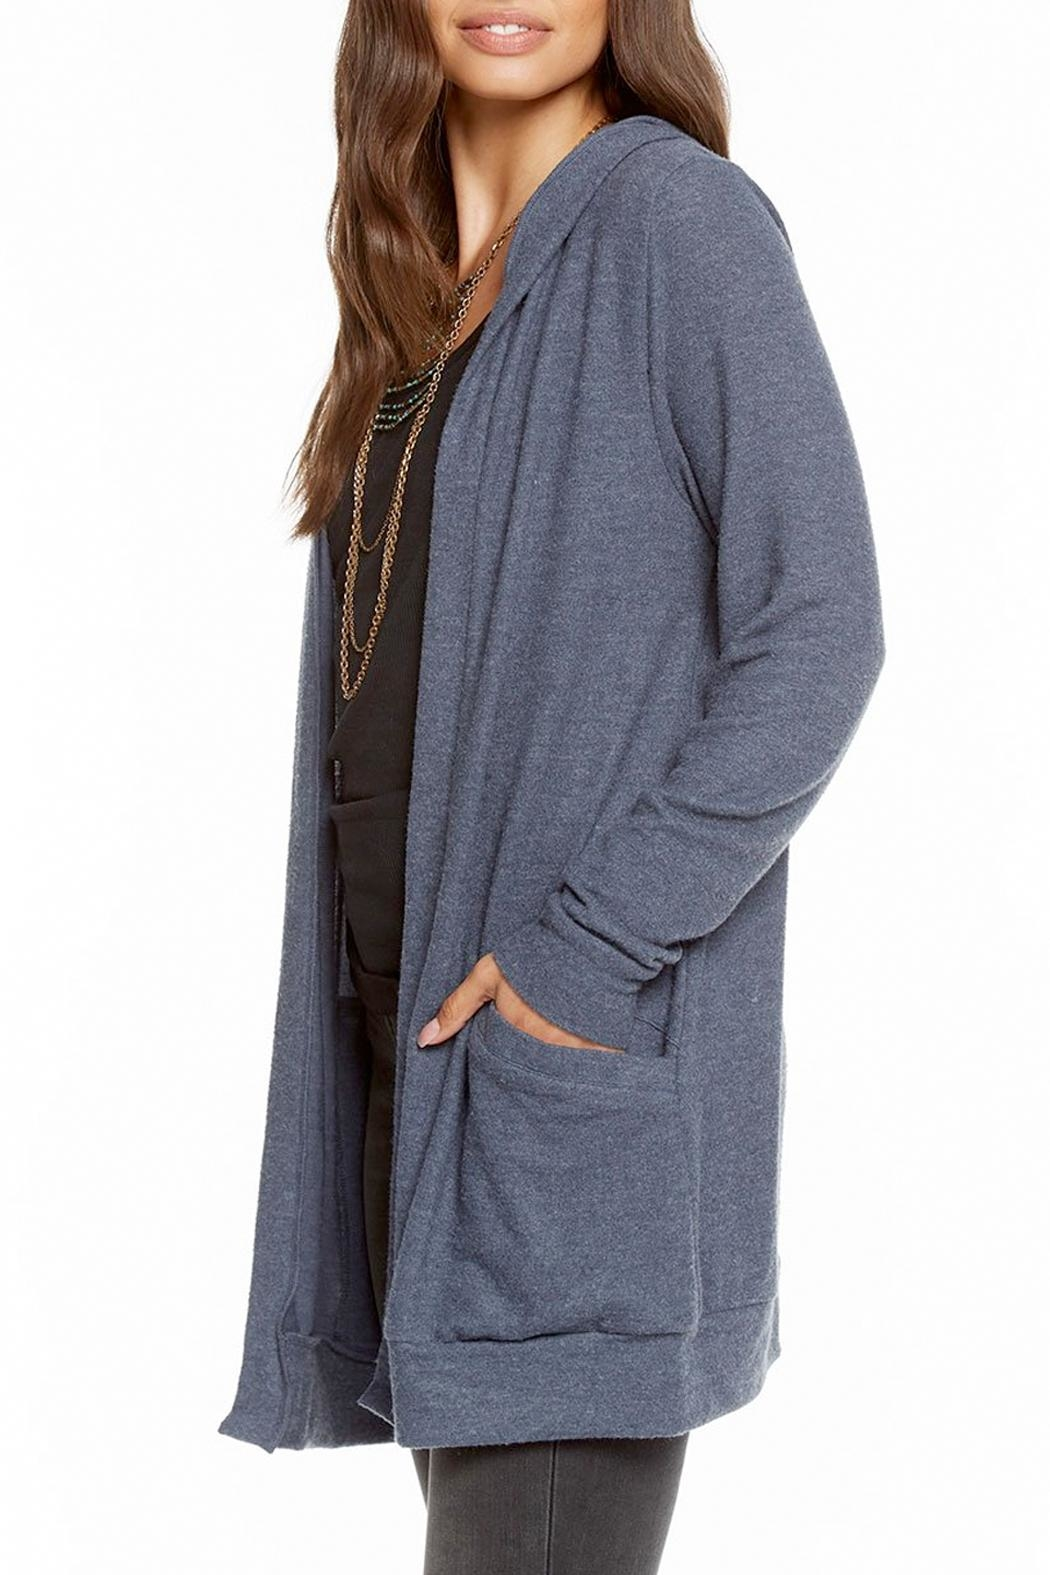 Chaser Laced Back Cardigan - Front Full Image